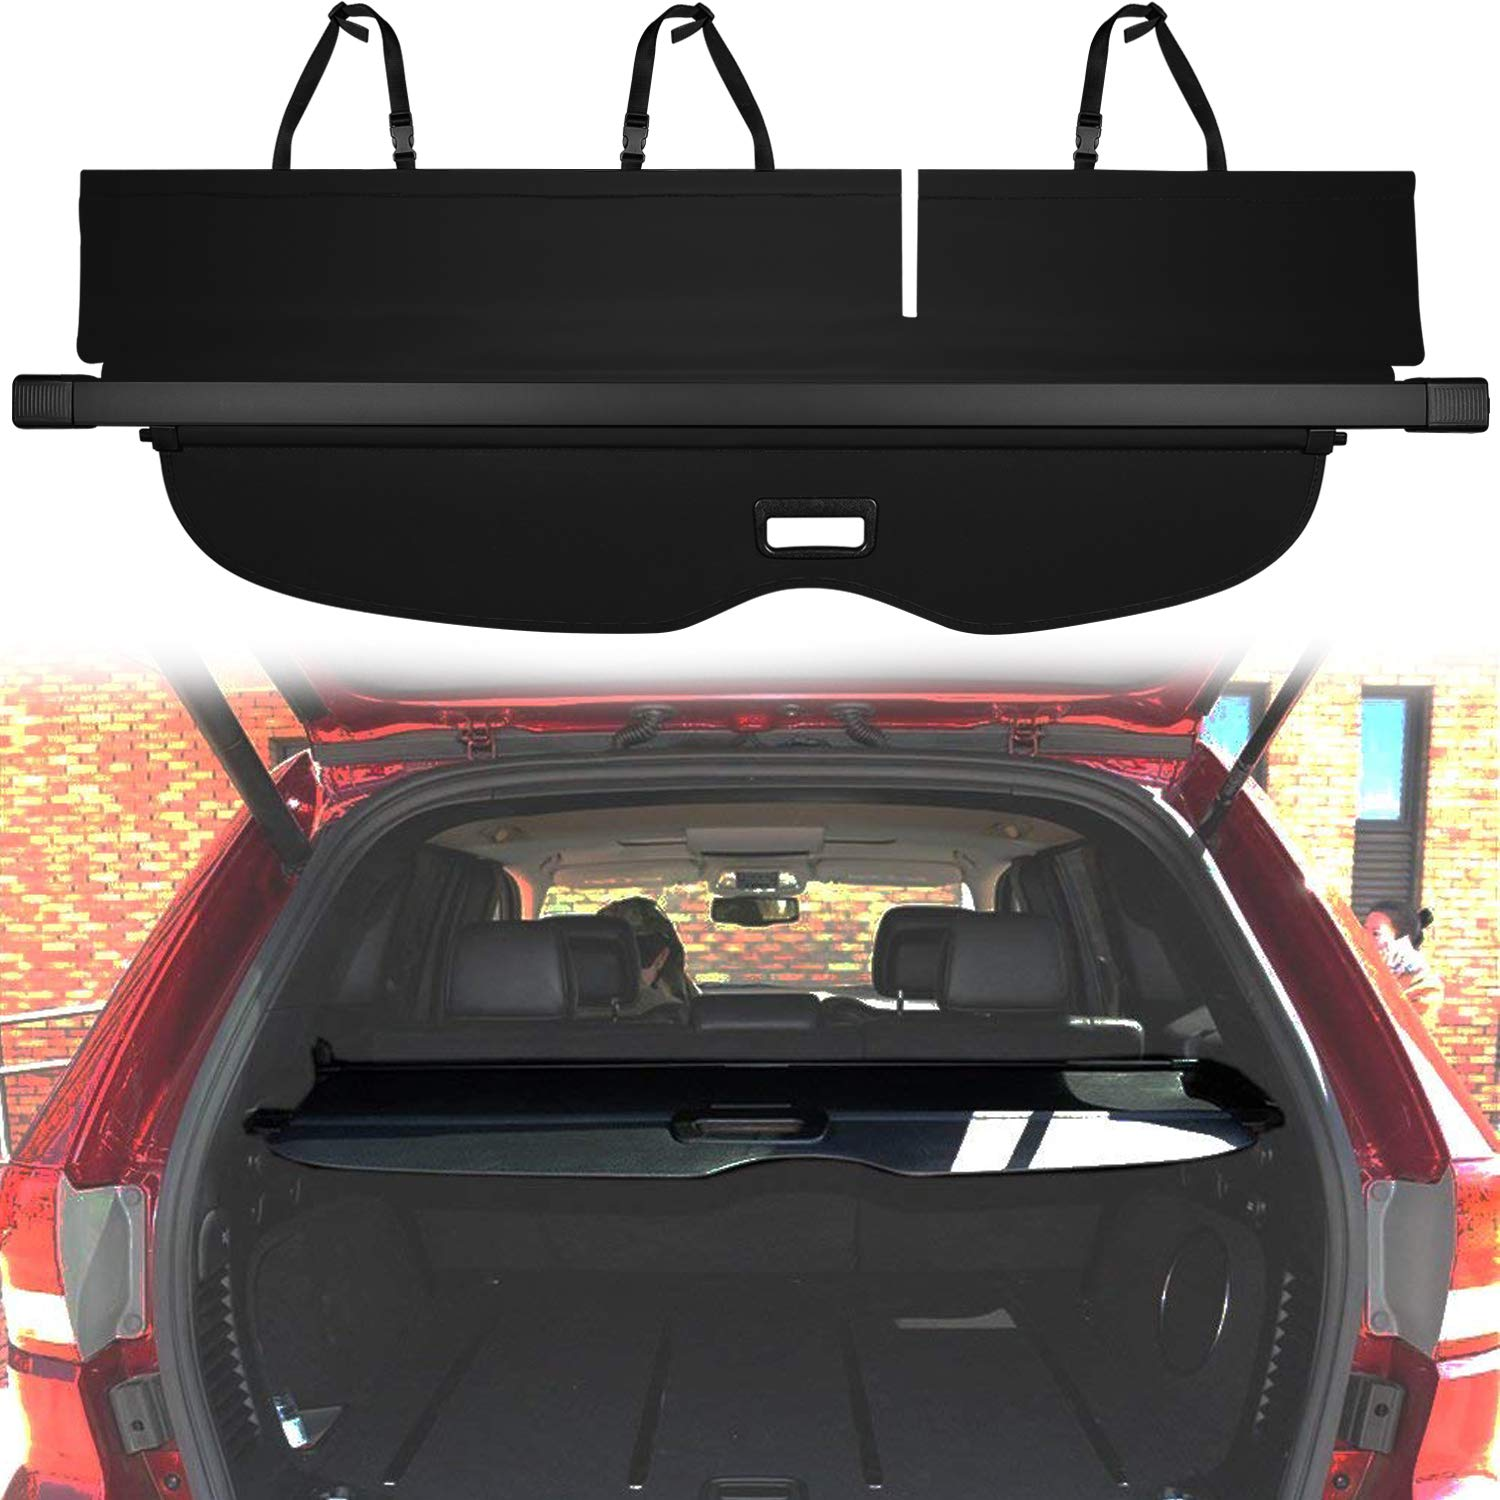 Cargo Cover Fit For Jeep Grand Cherokee 2011–2019 Retractable Rear Trunk Organizer Cargo Luggage Security Shade Cover Shield (Updated Version: No Gap in the back seat, Not Fit for Jeep Cherokee)